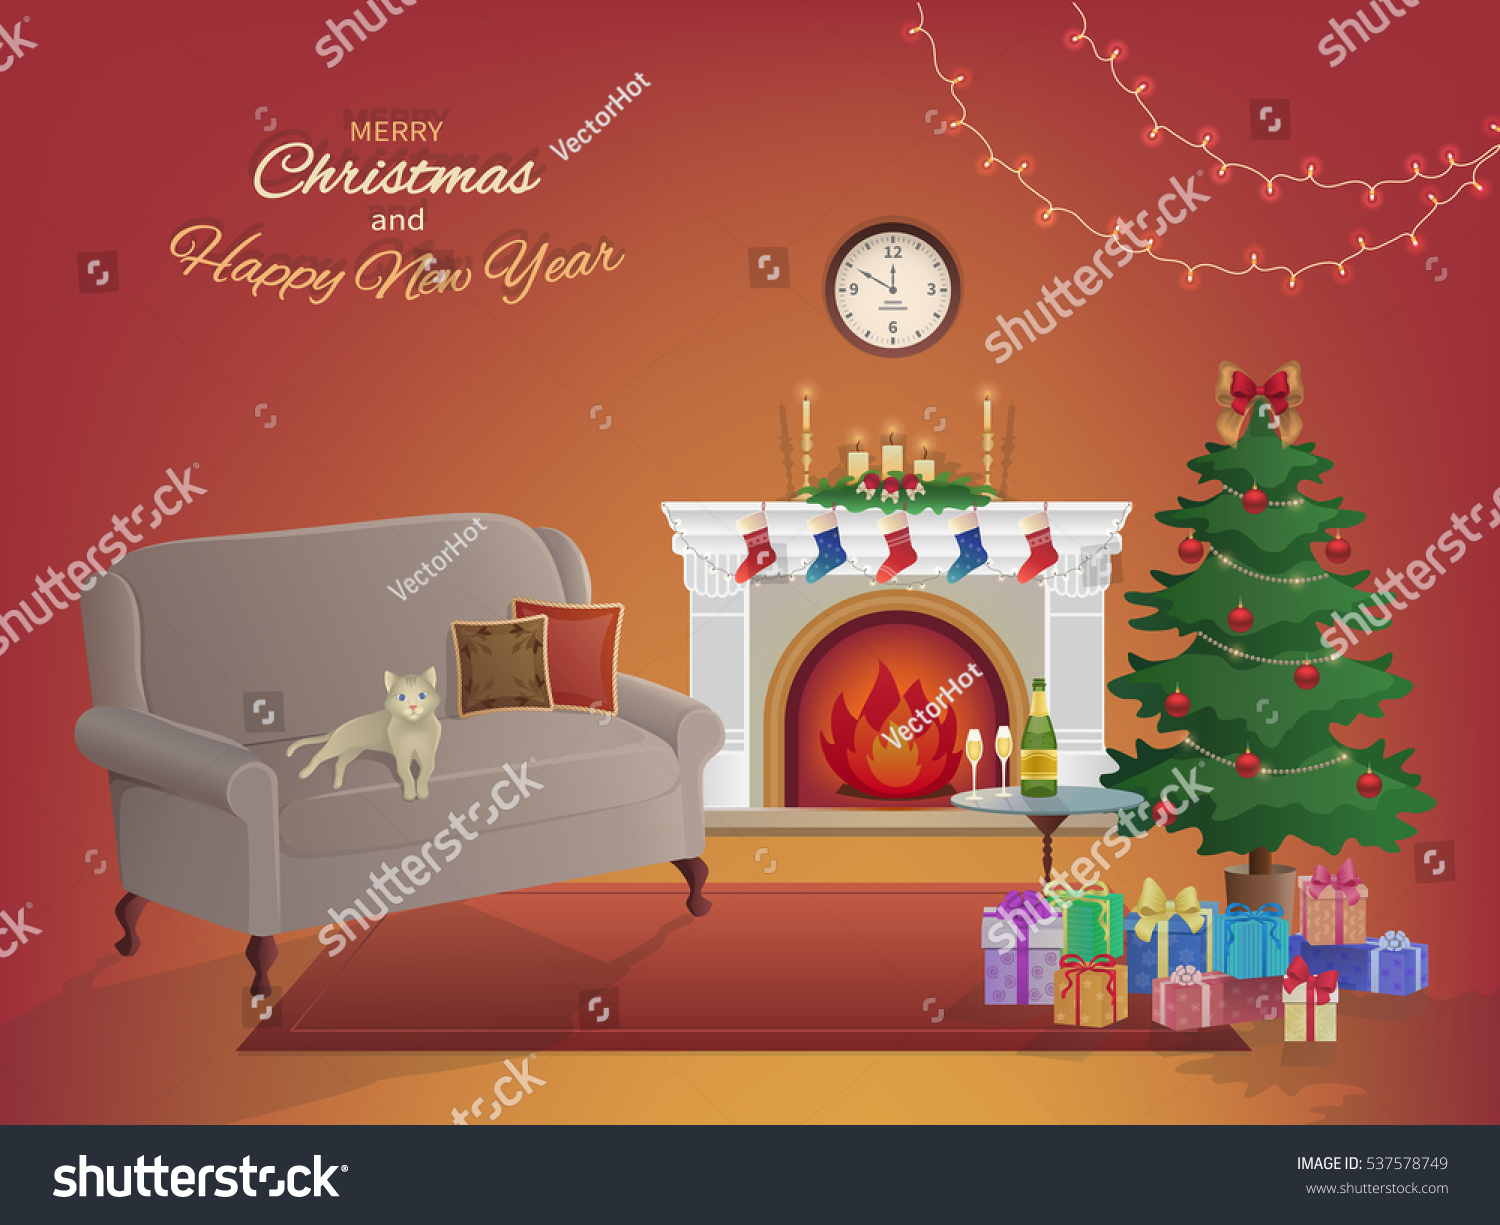 merry christmas room interior on red stock vector 537578749